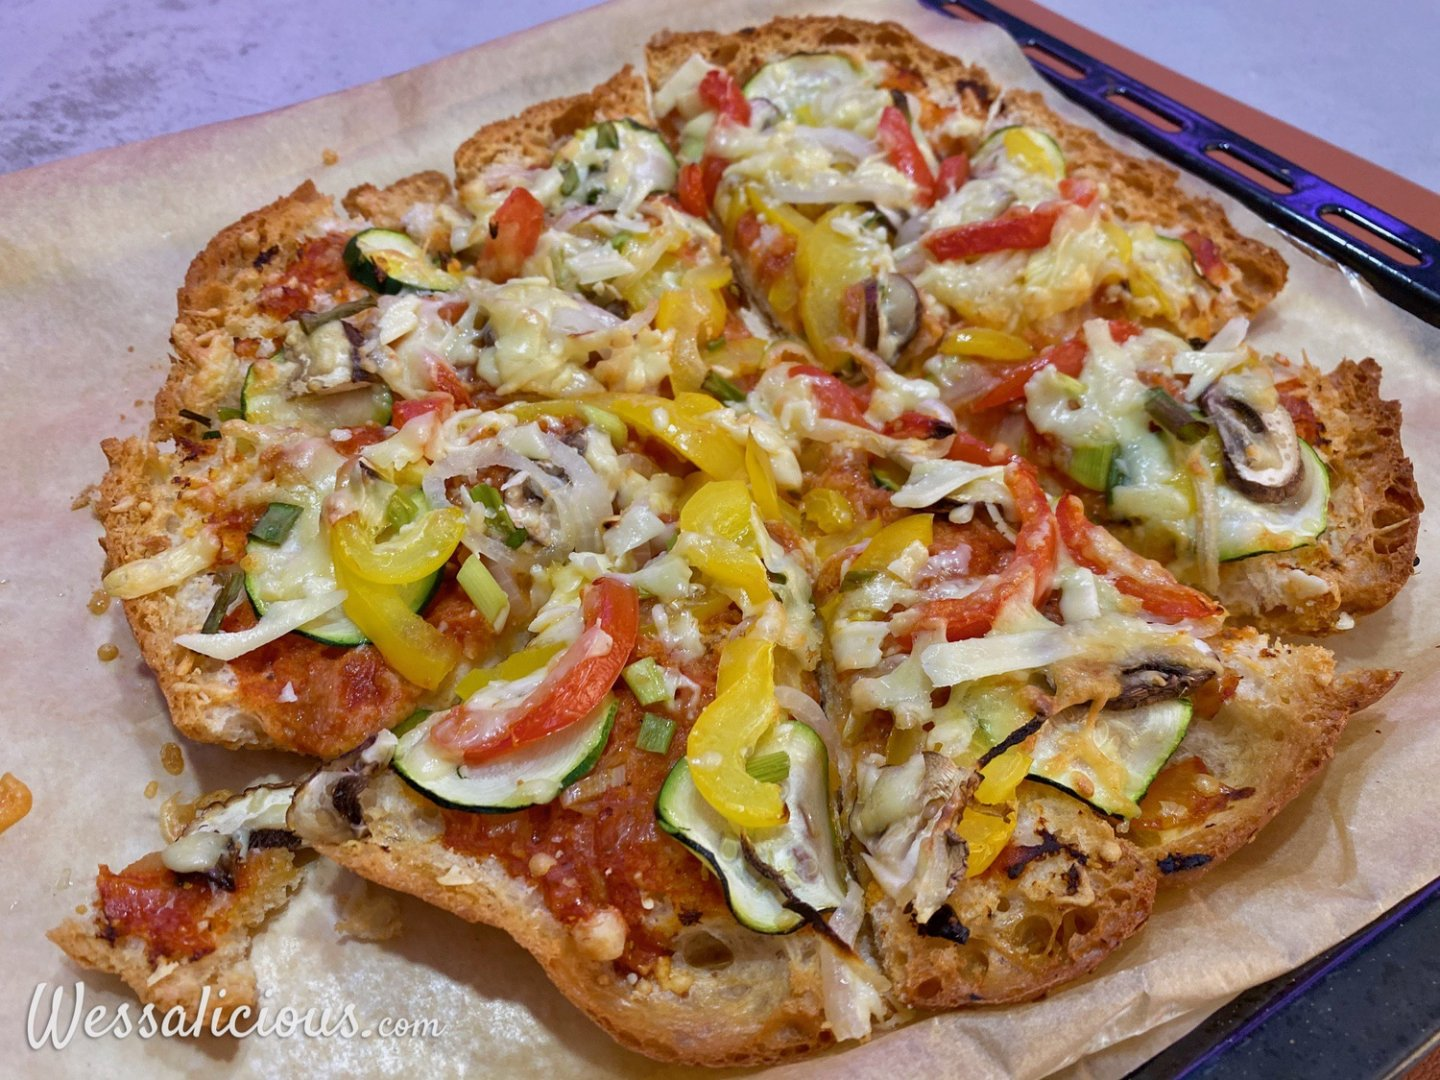 Pizza van turks brood met mozzarella salade